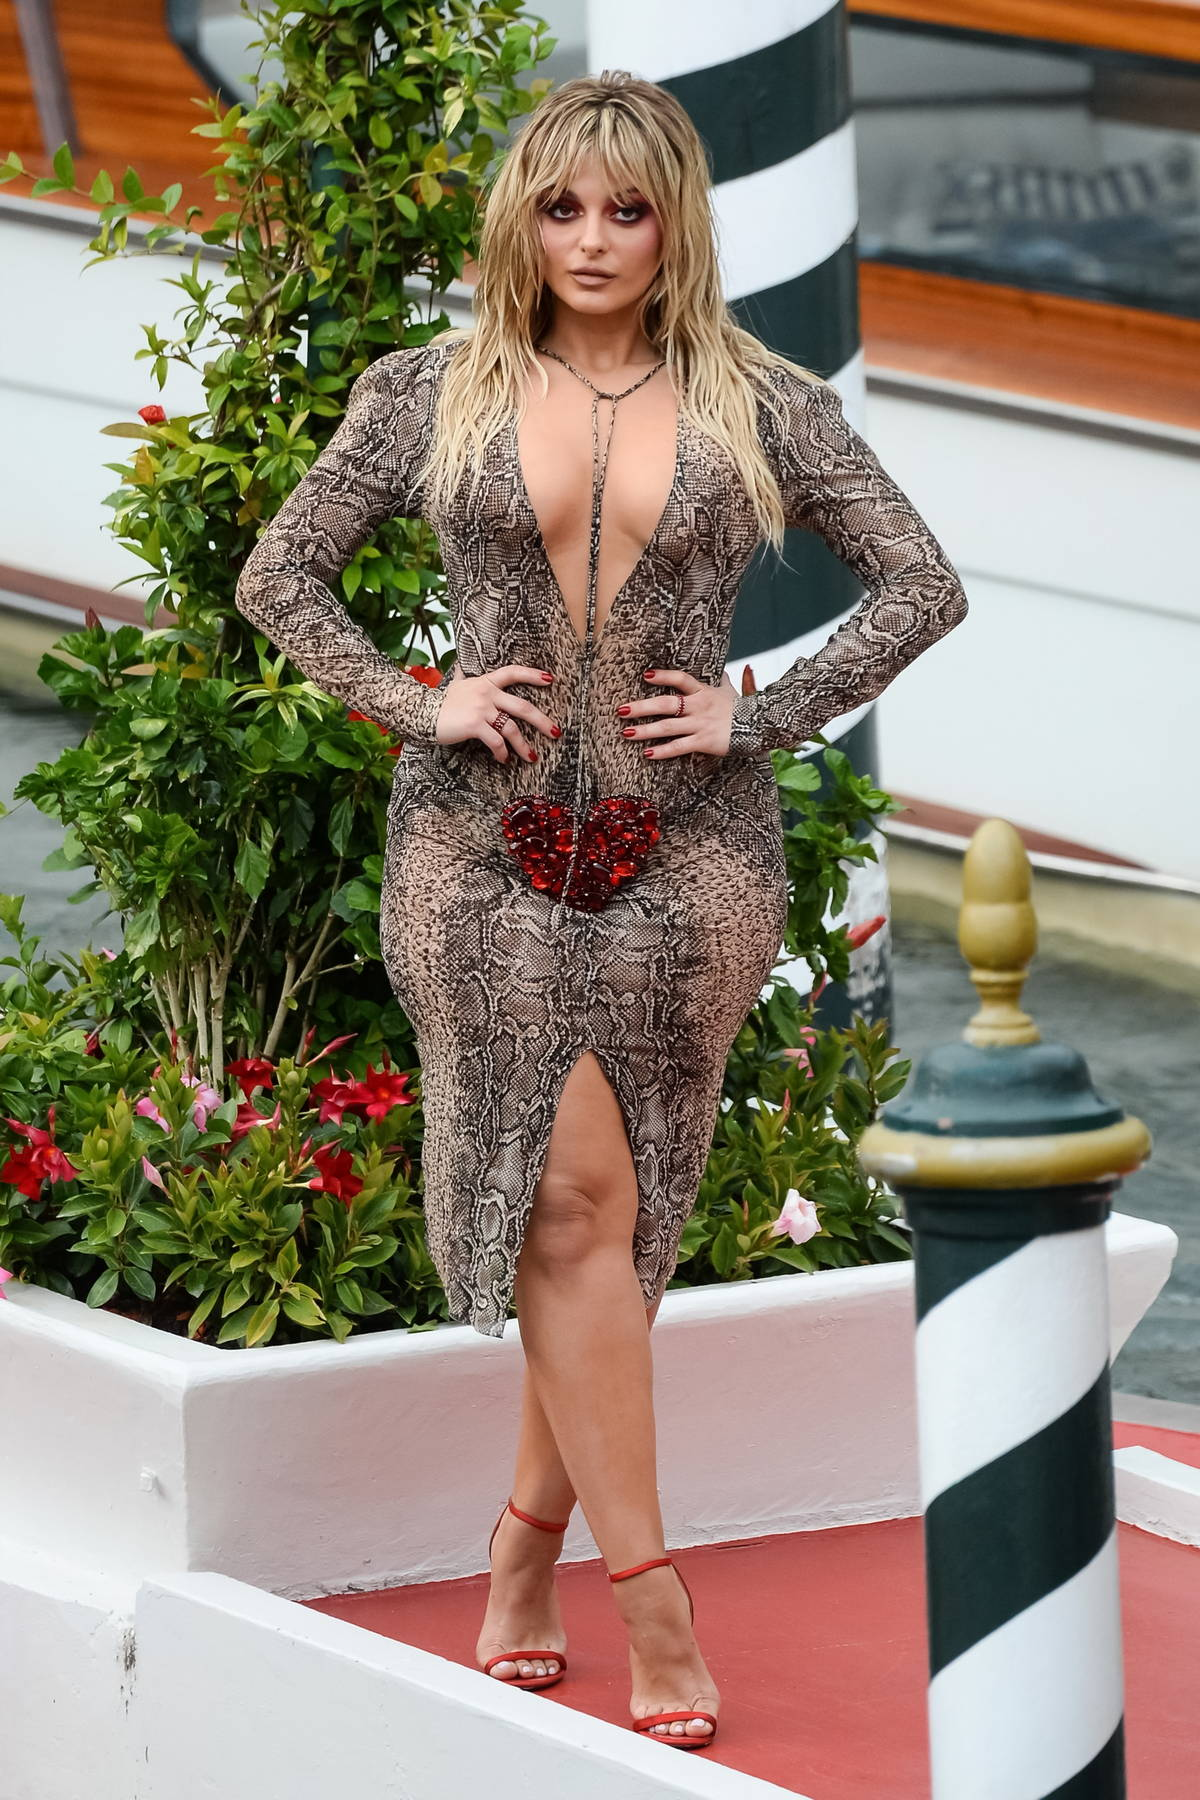 Bebe Rexha flaunts her curves in a snake print bodycon dress during the Day 3 of Dolce & Gabbana event in Venice, Italy